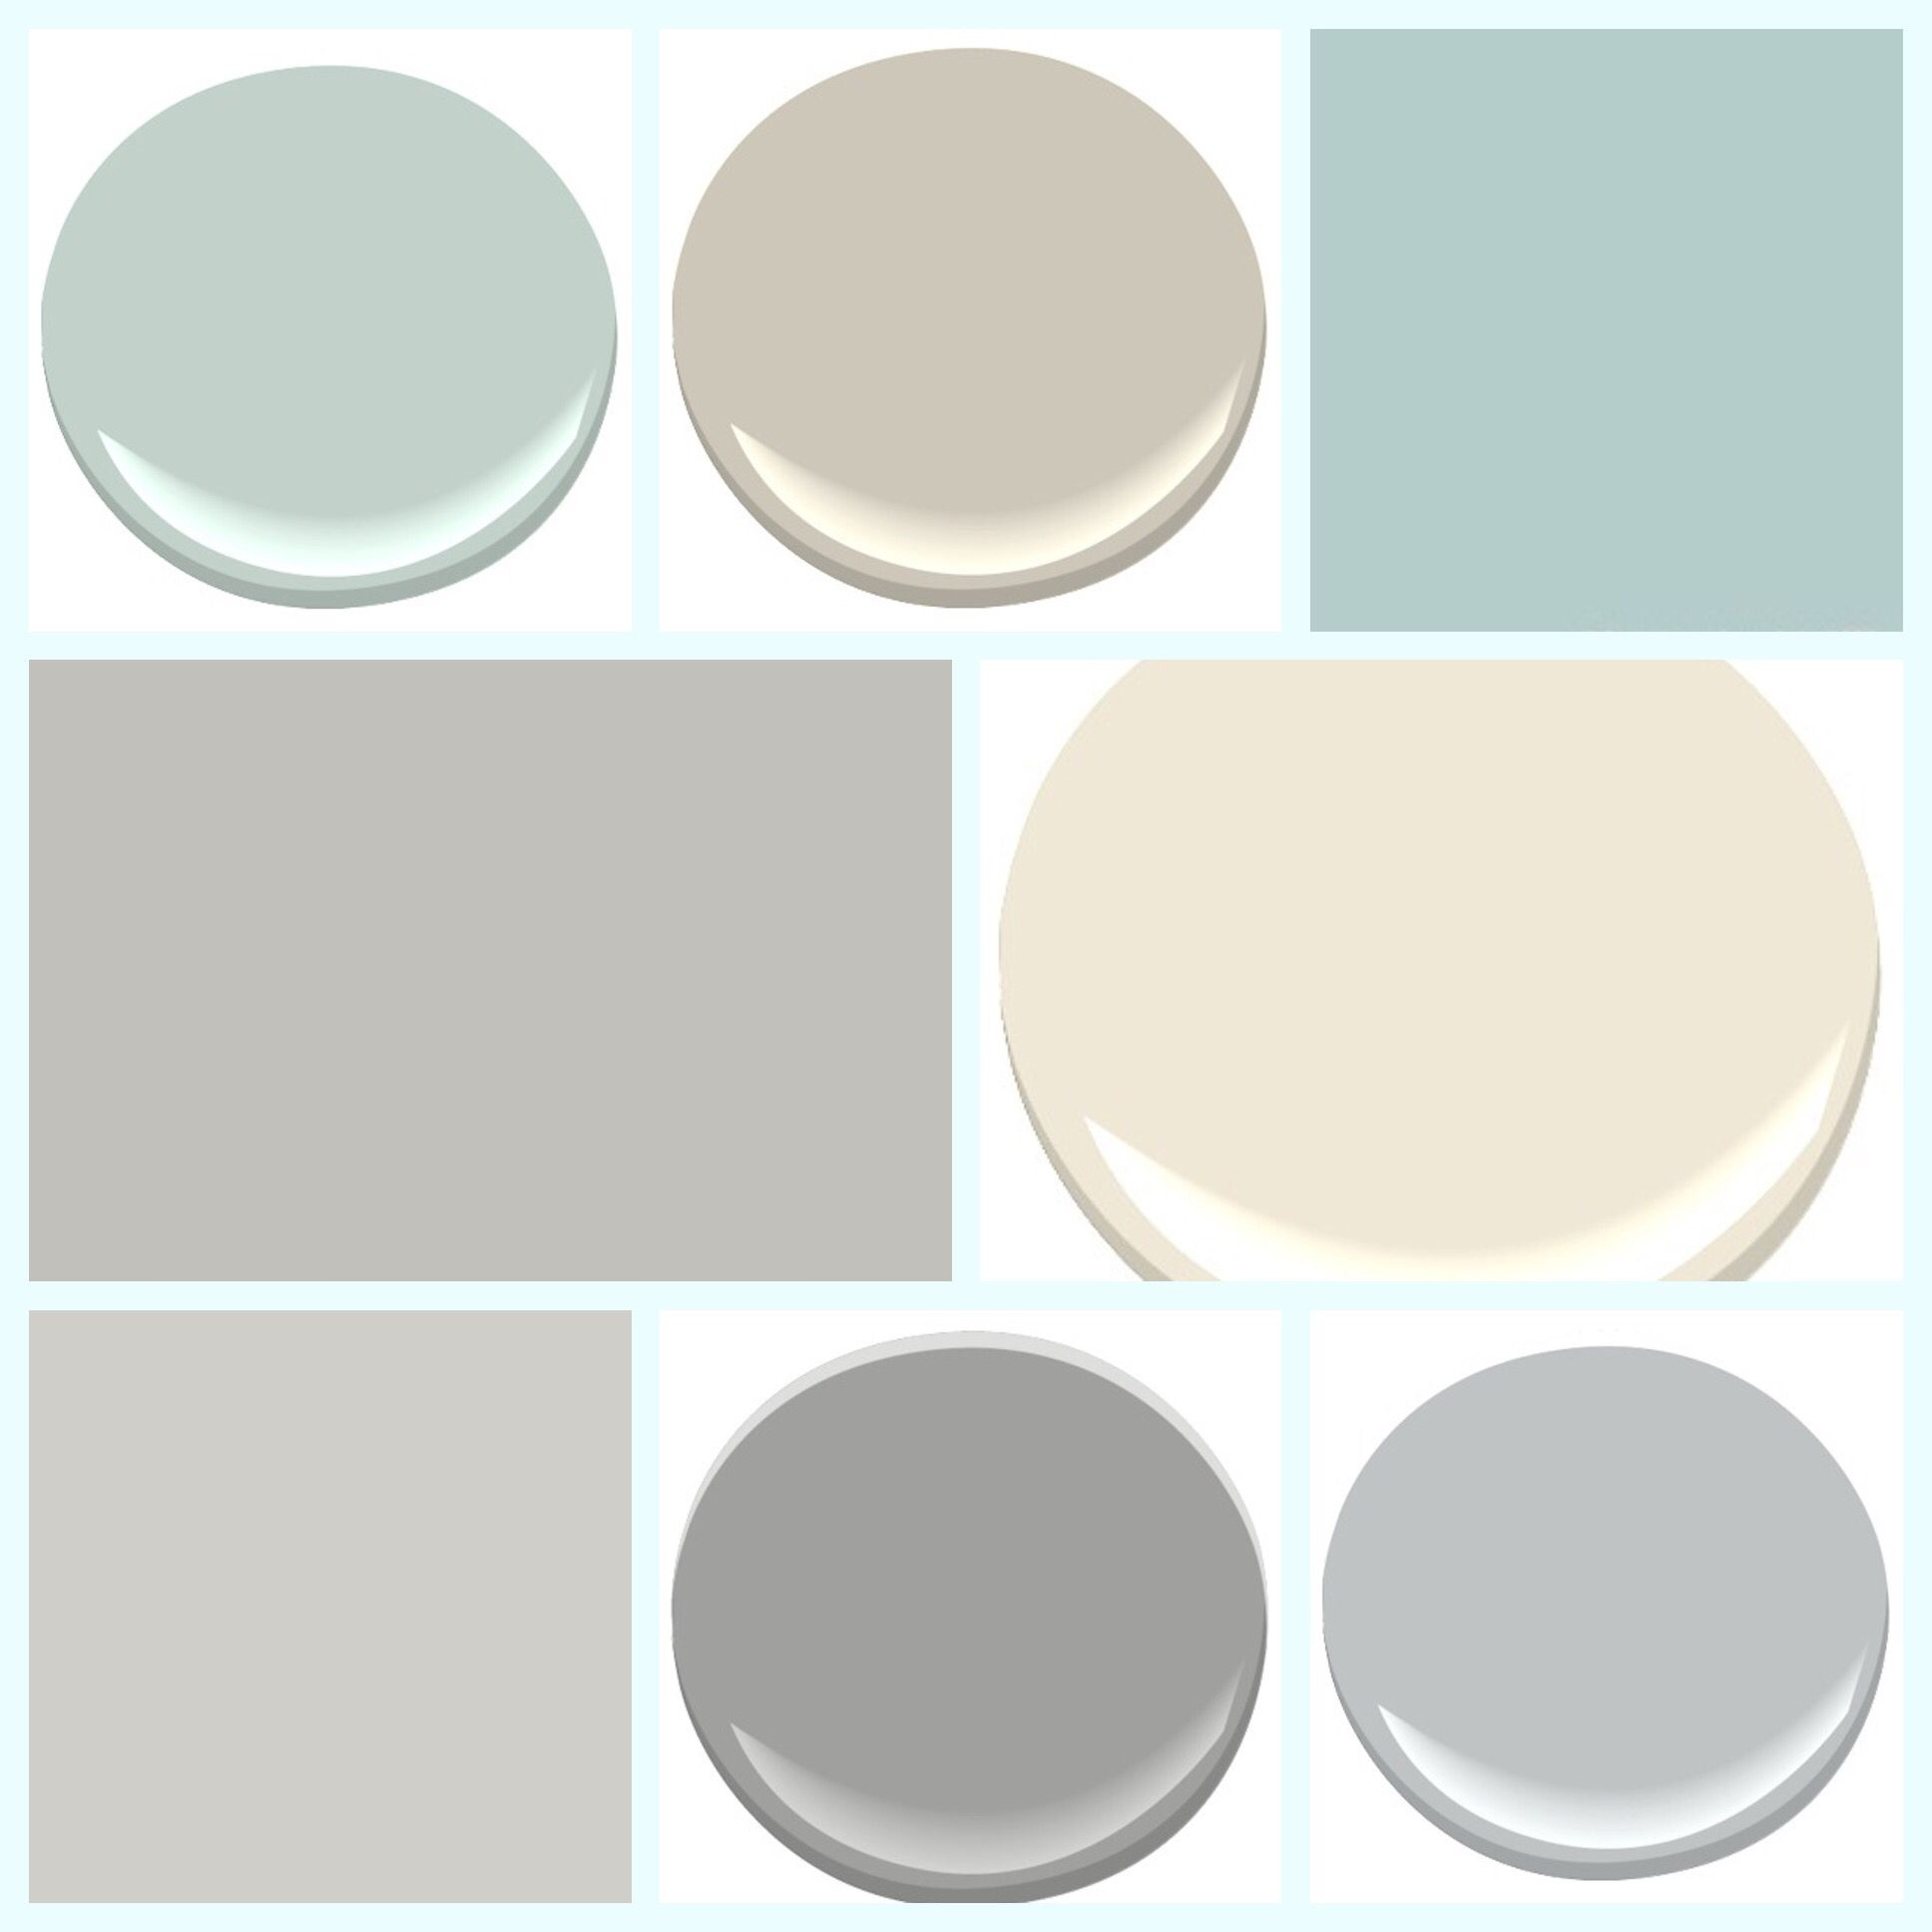 My final palette top row palladian blue benjamin Revere pewter benjamin moore